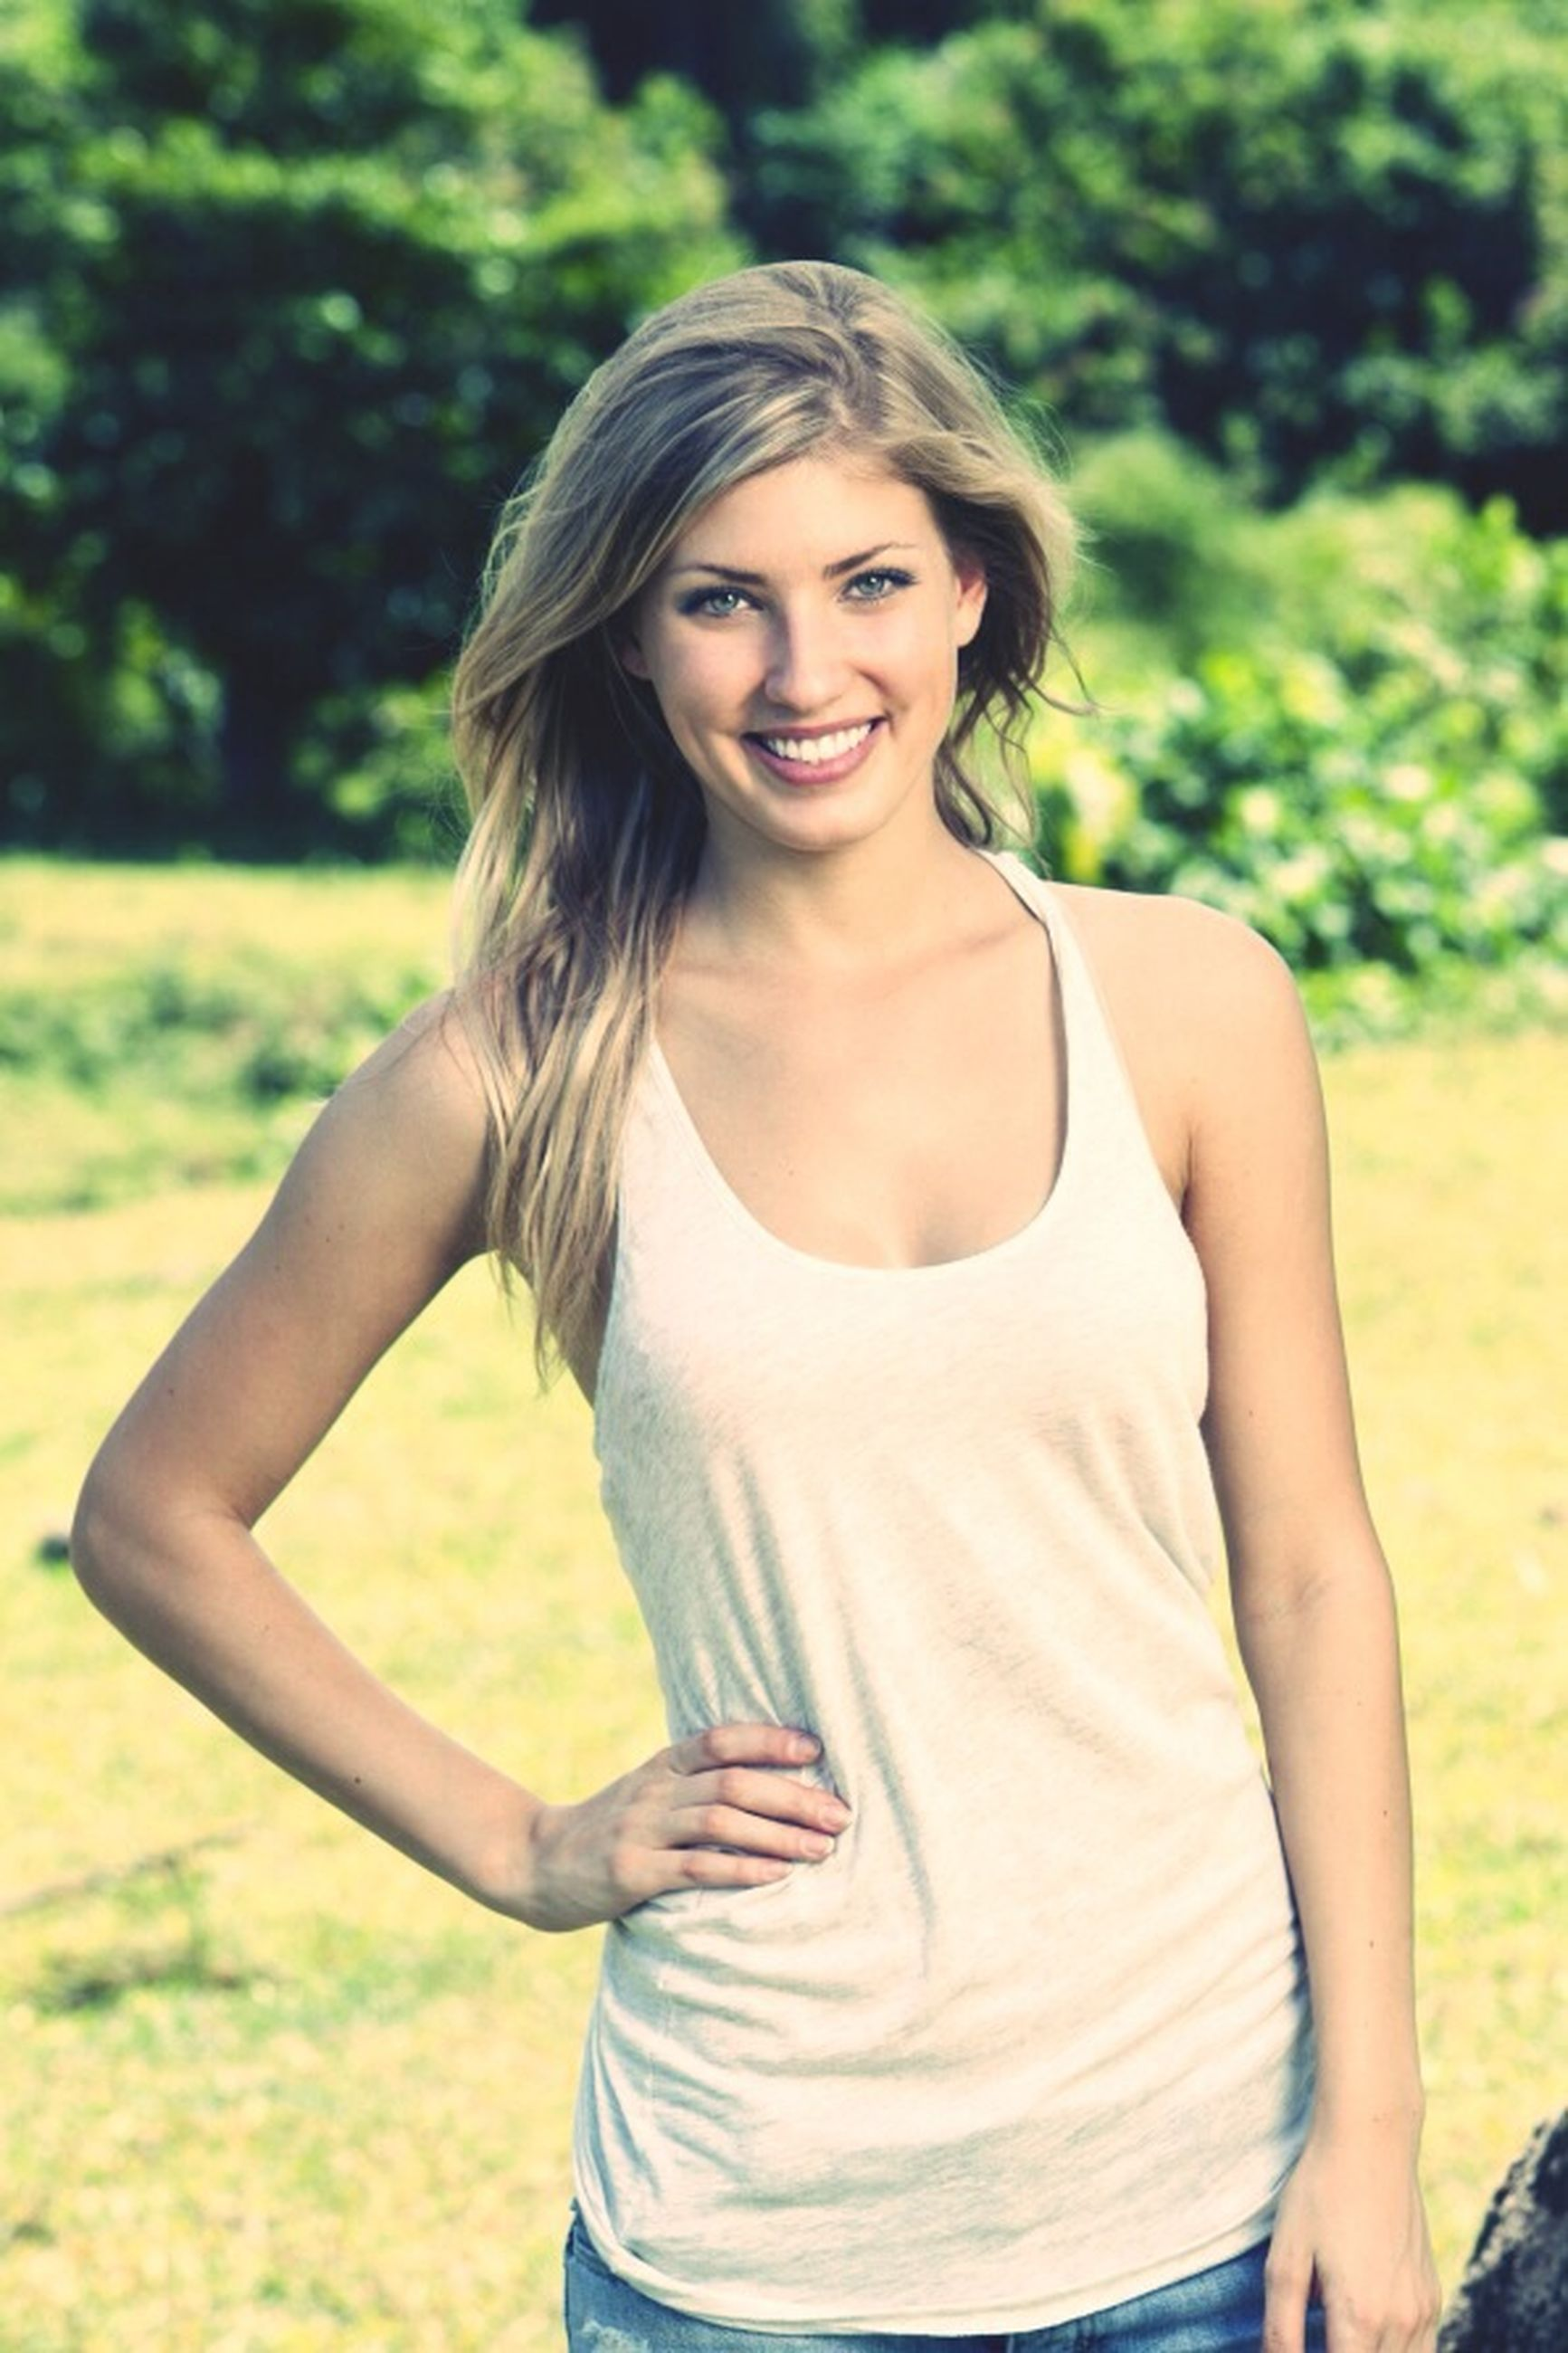 young adult, person, lifestyles, young women, casual clothing, leisure activity, focus on foreground, portrait, looking at camera, three quarter length, standing, front view, waist up, long hair, smiling, happiness, grass